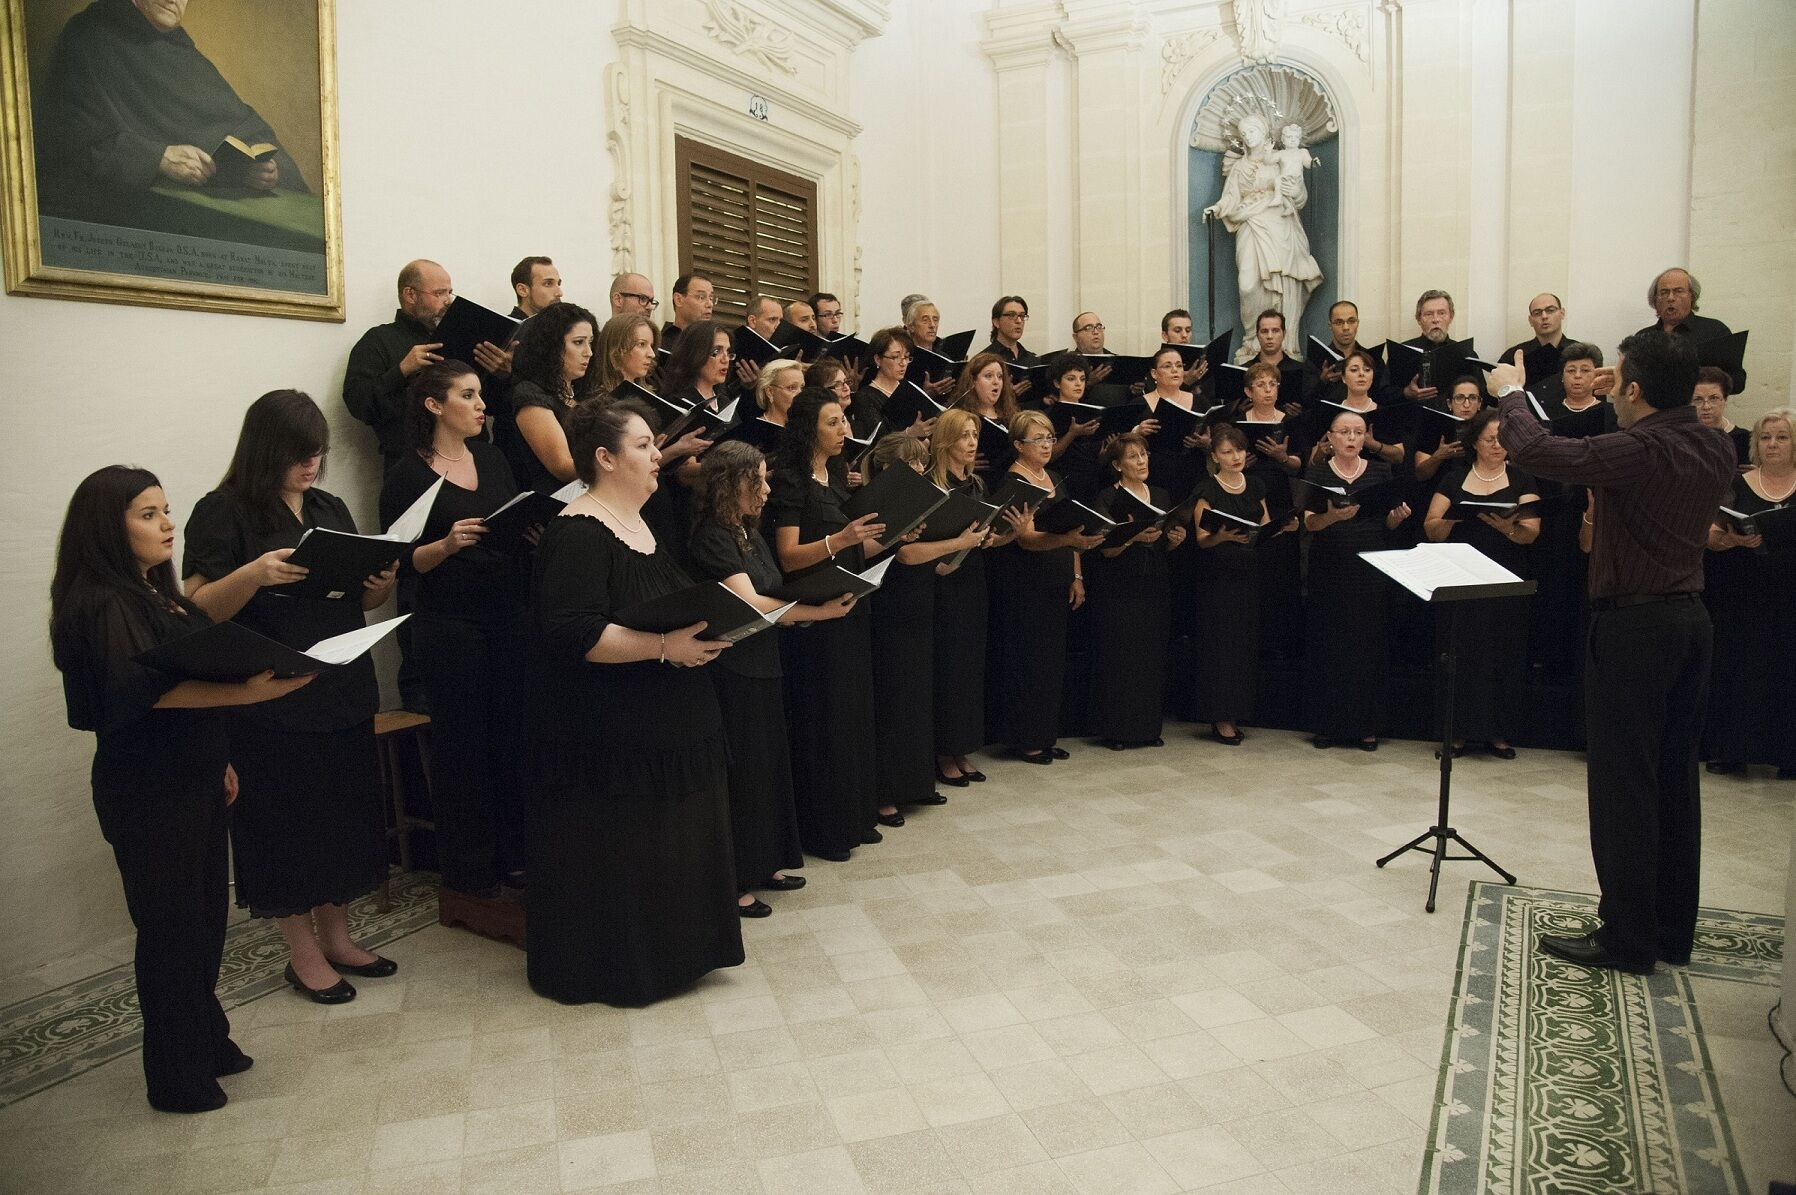 Concert of a capella music at St. Mark\'s Priory in Rabat - 27 October 2012